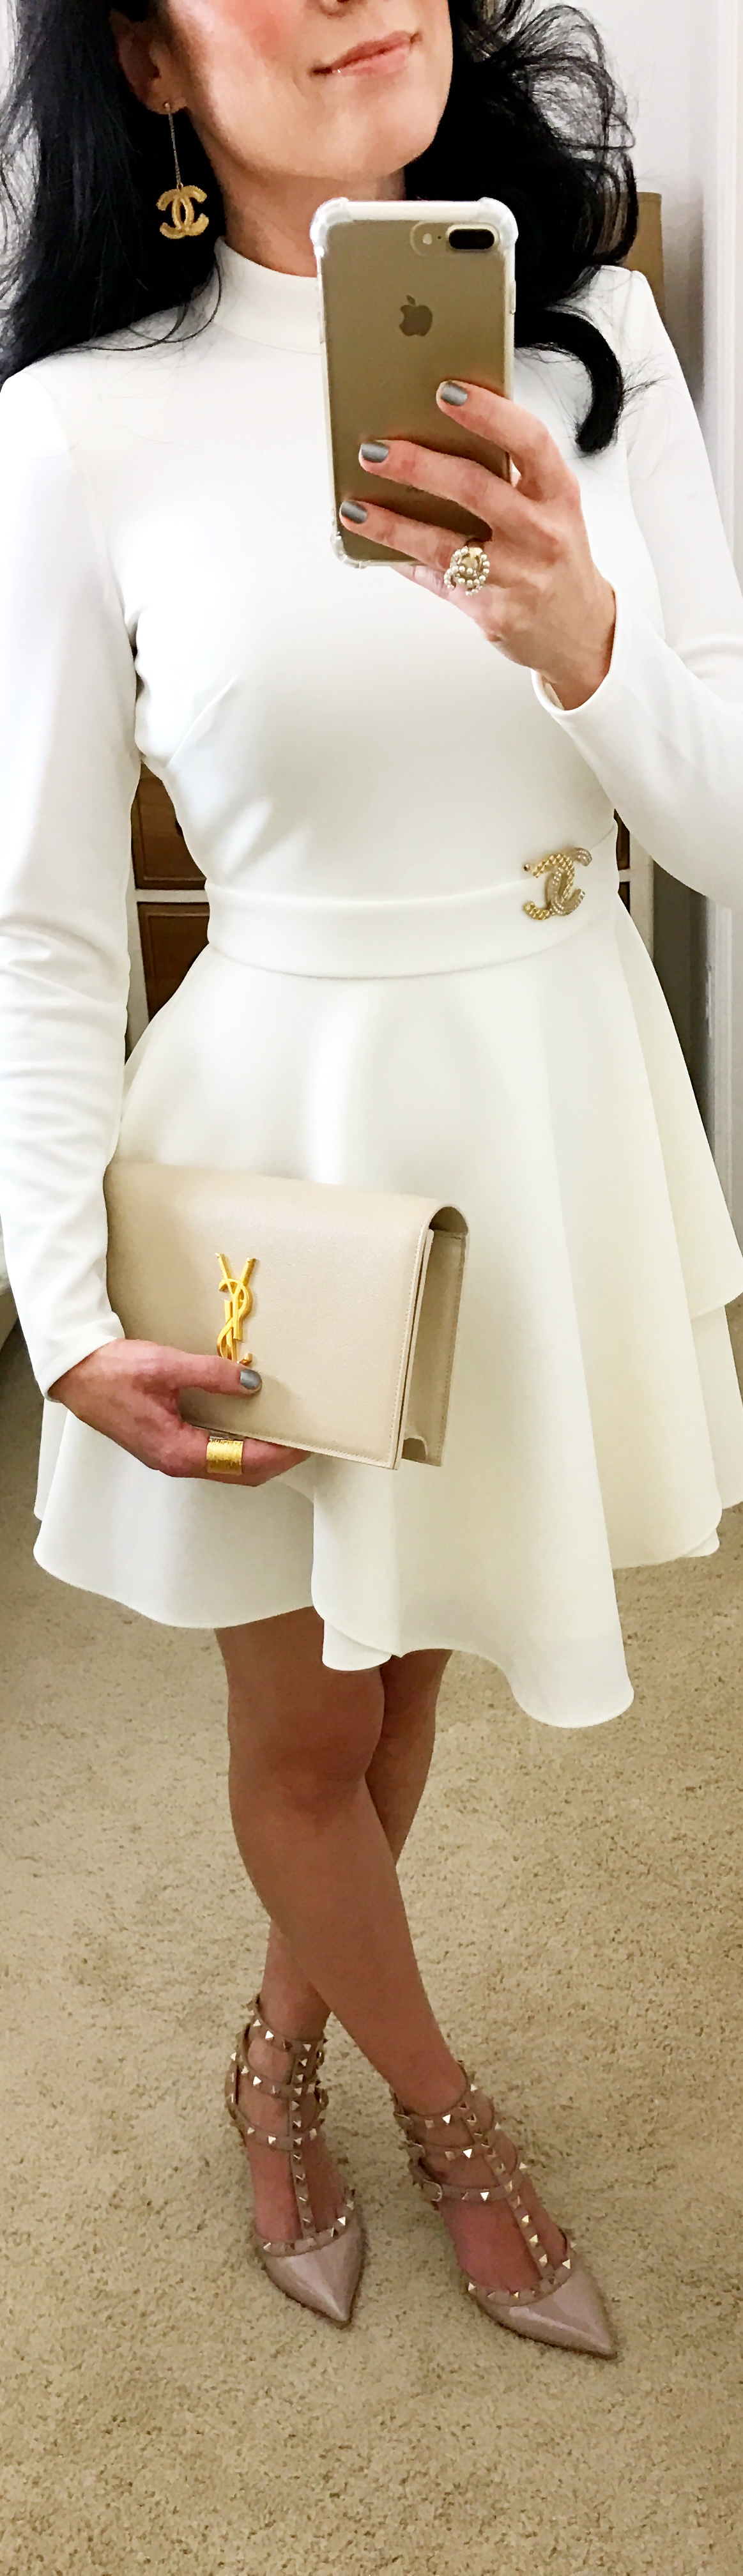 December 12, Holiday Party White Scuba Dress by BeBe with Valentino Rockstuds and YSL Clutch